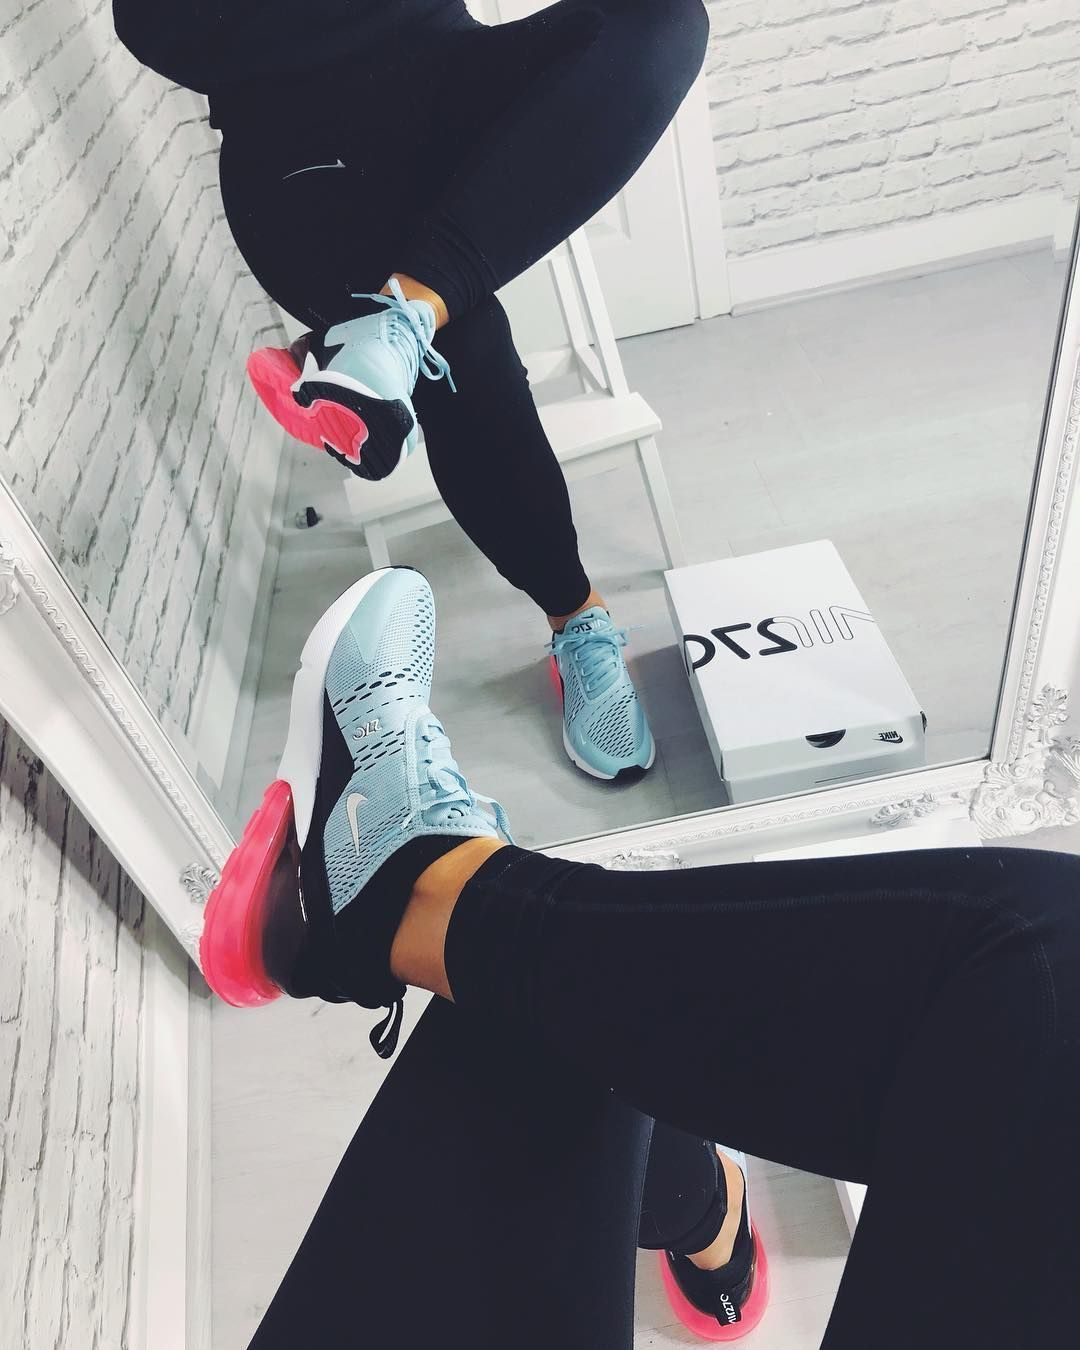 Women's Shoes on | Nike air max, Air max 270, Nike